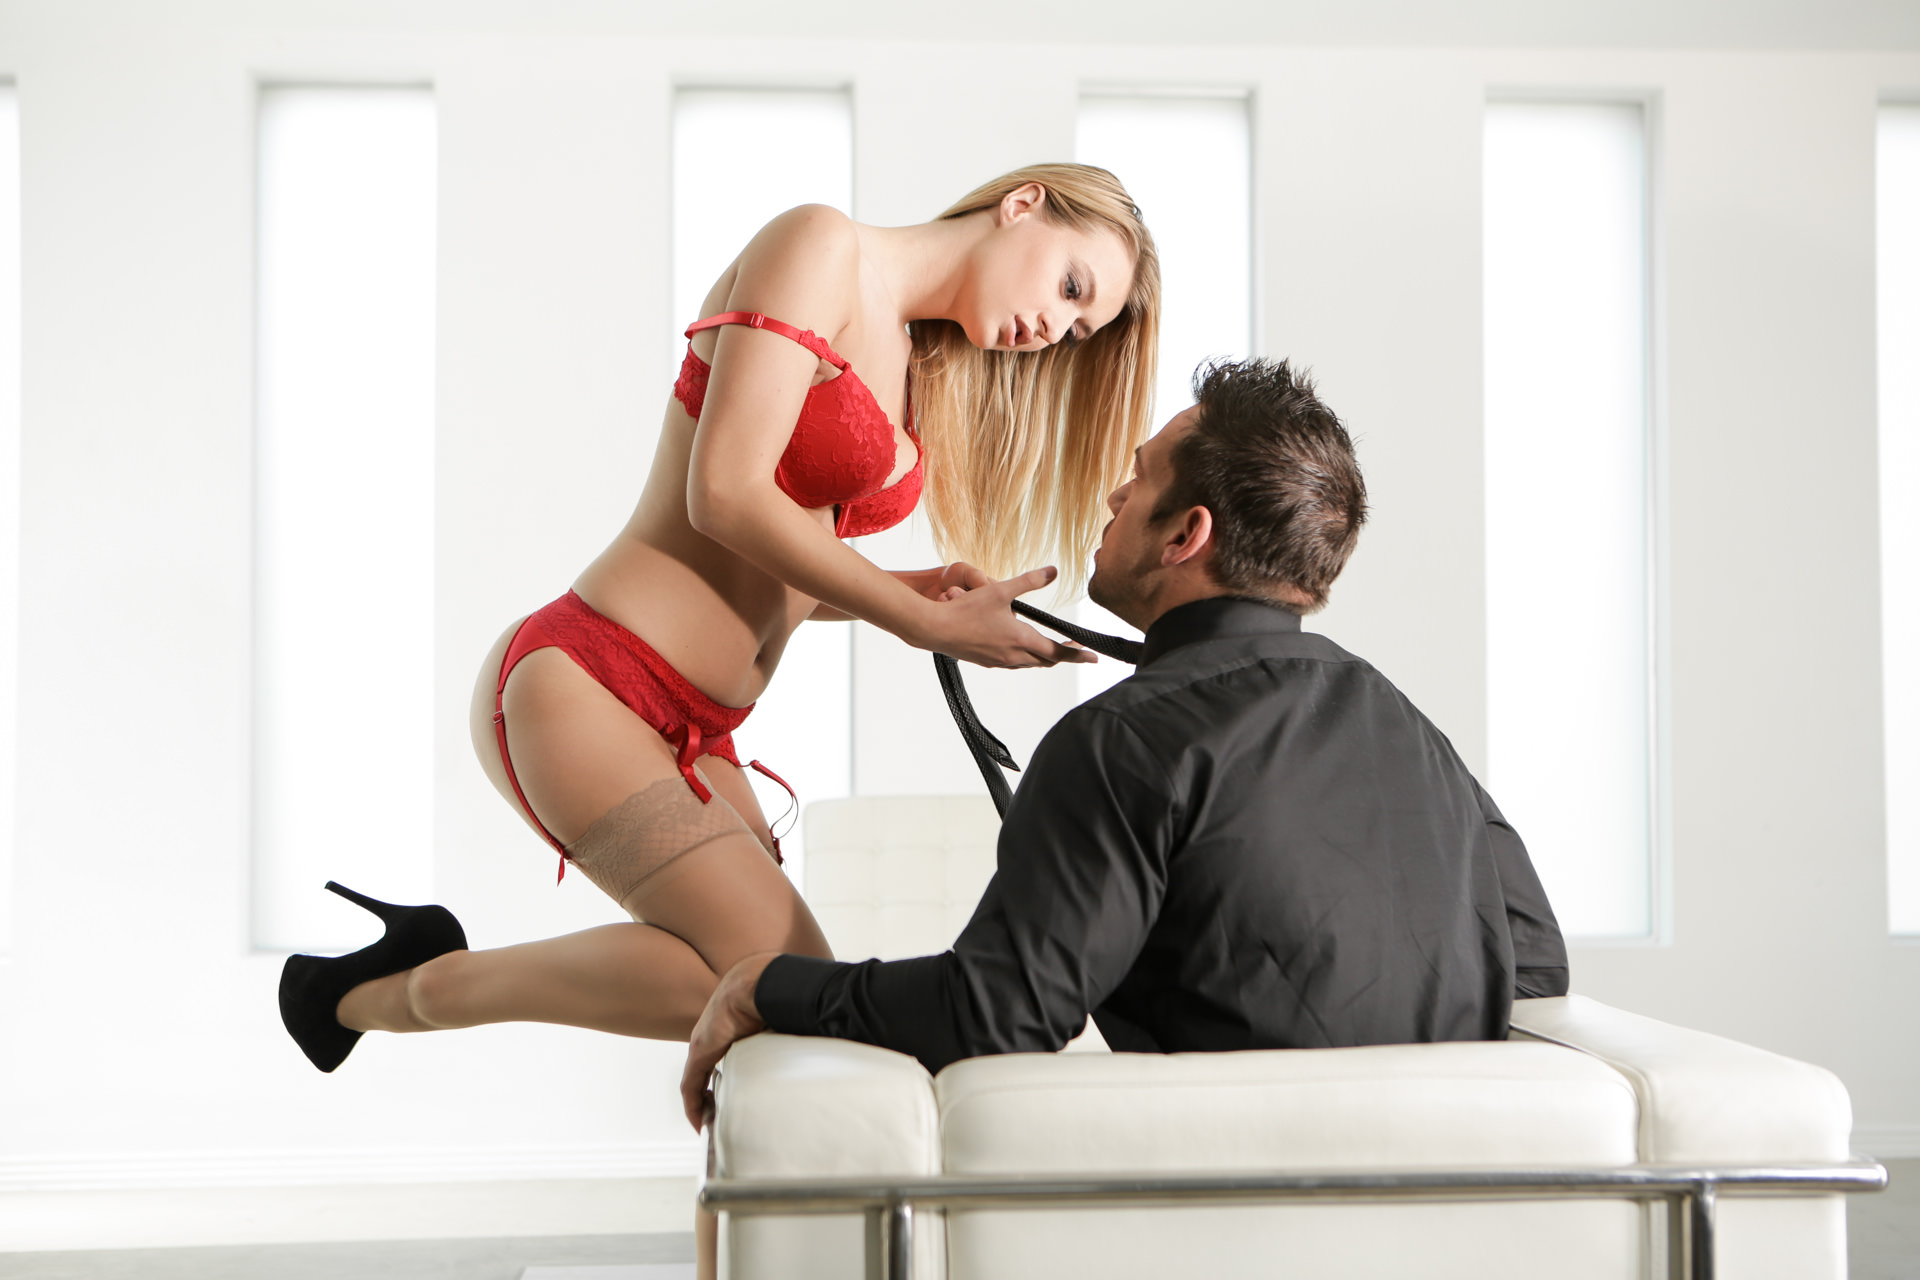 EroticaX – Crimson Seduction – Natalia Starr